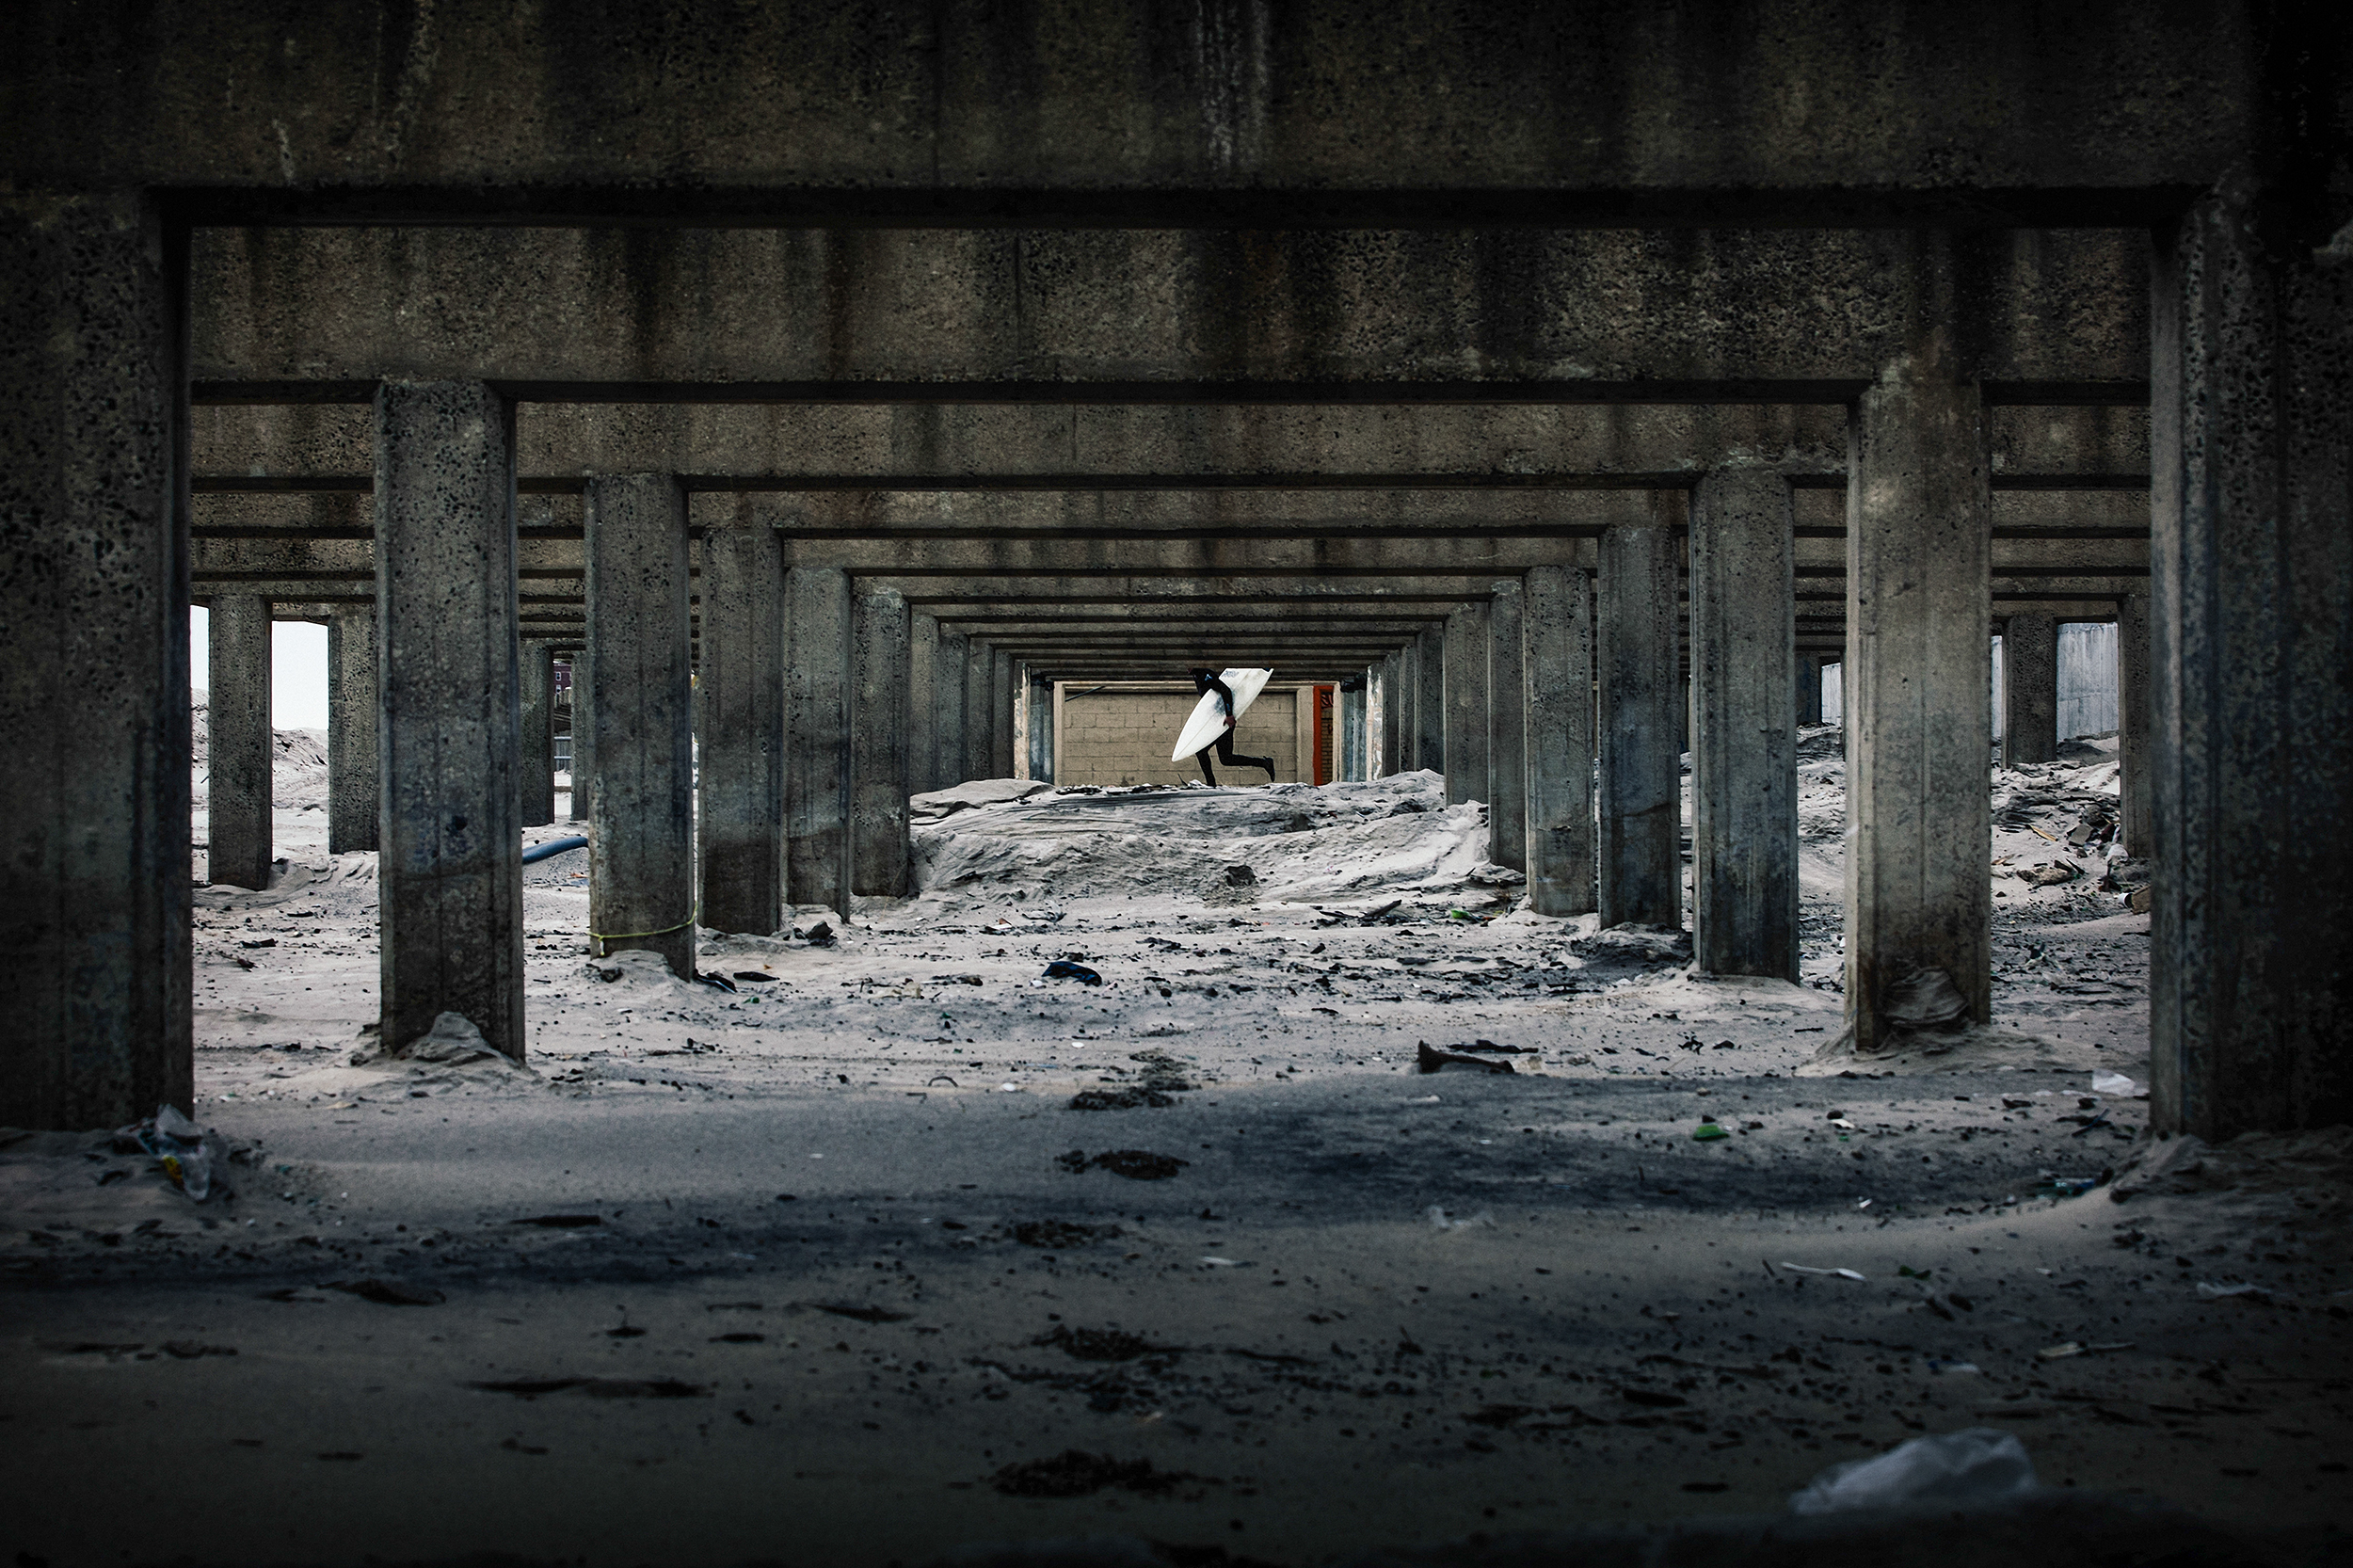 After Hurricane Sandy, Long Beach, NY - Rob Bielawski